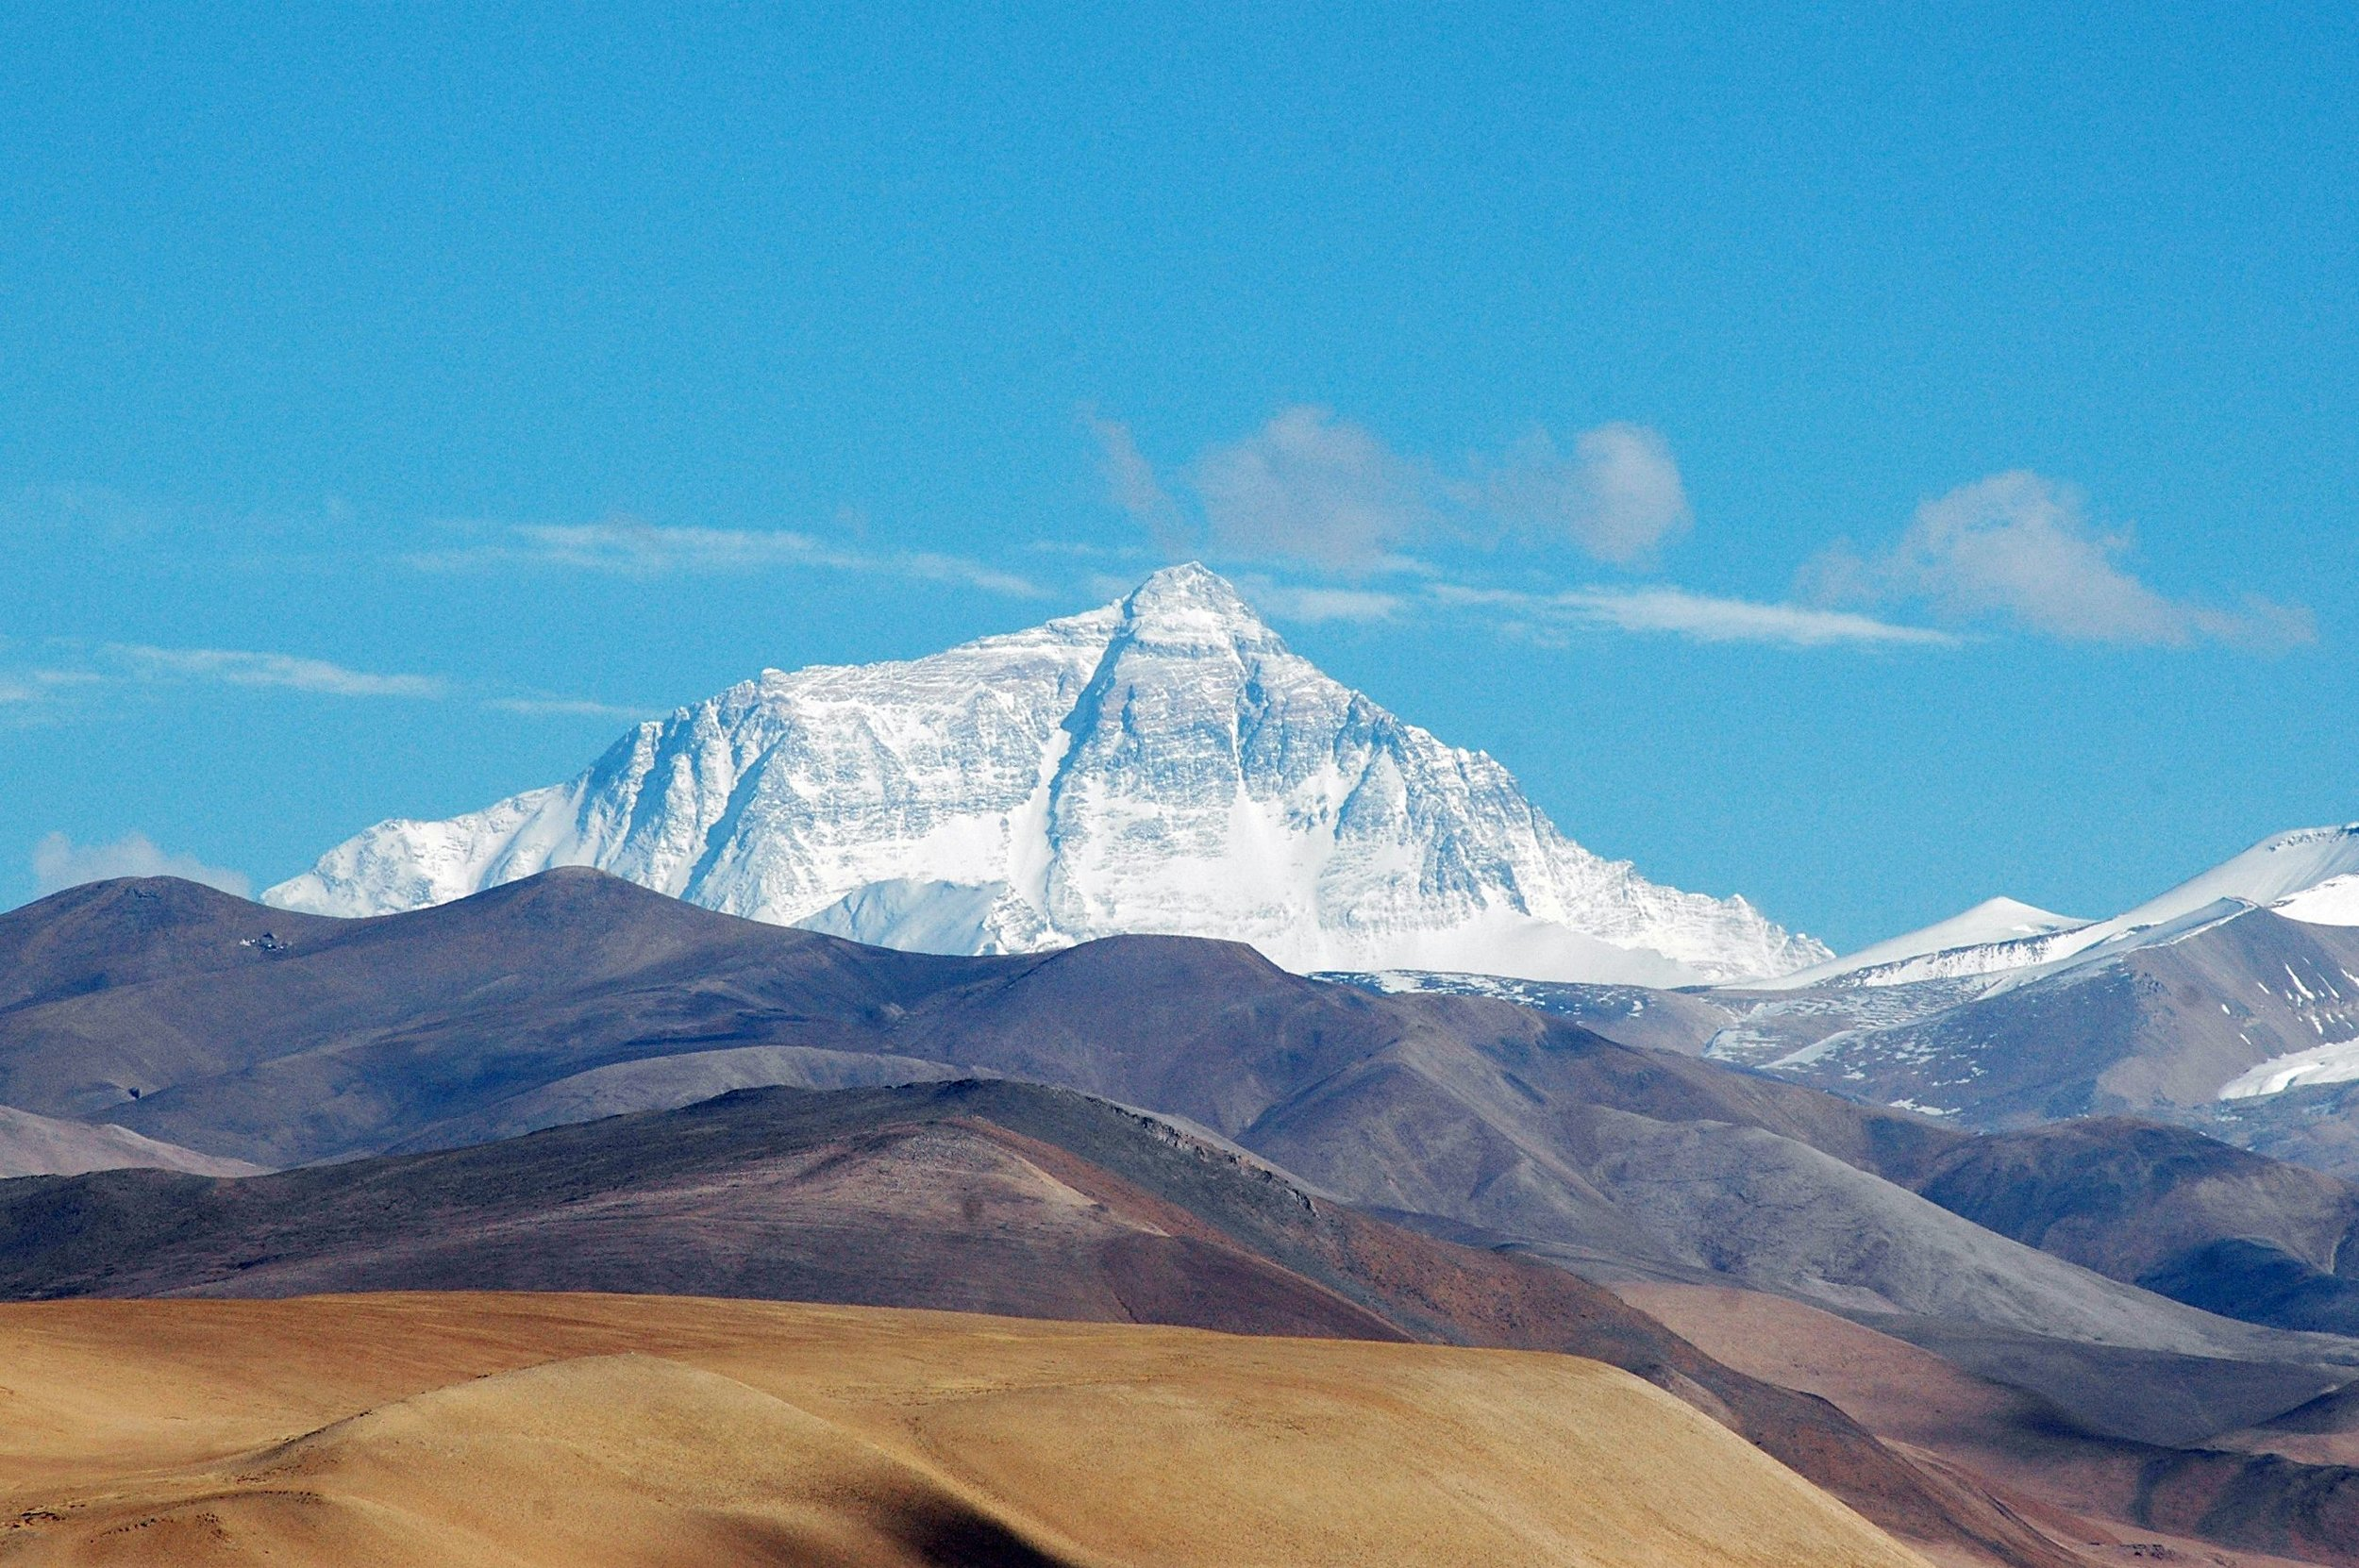 Everest in its beauty